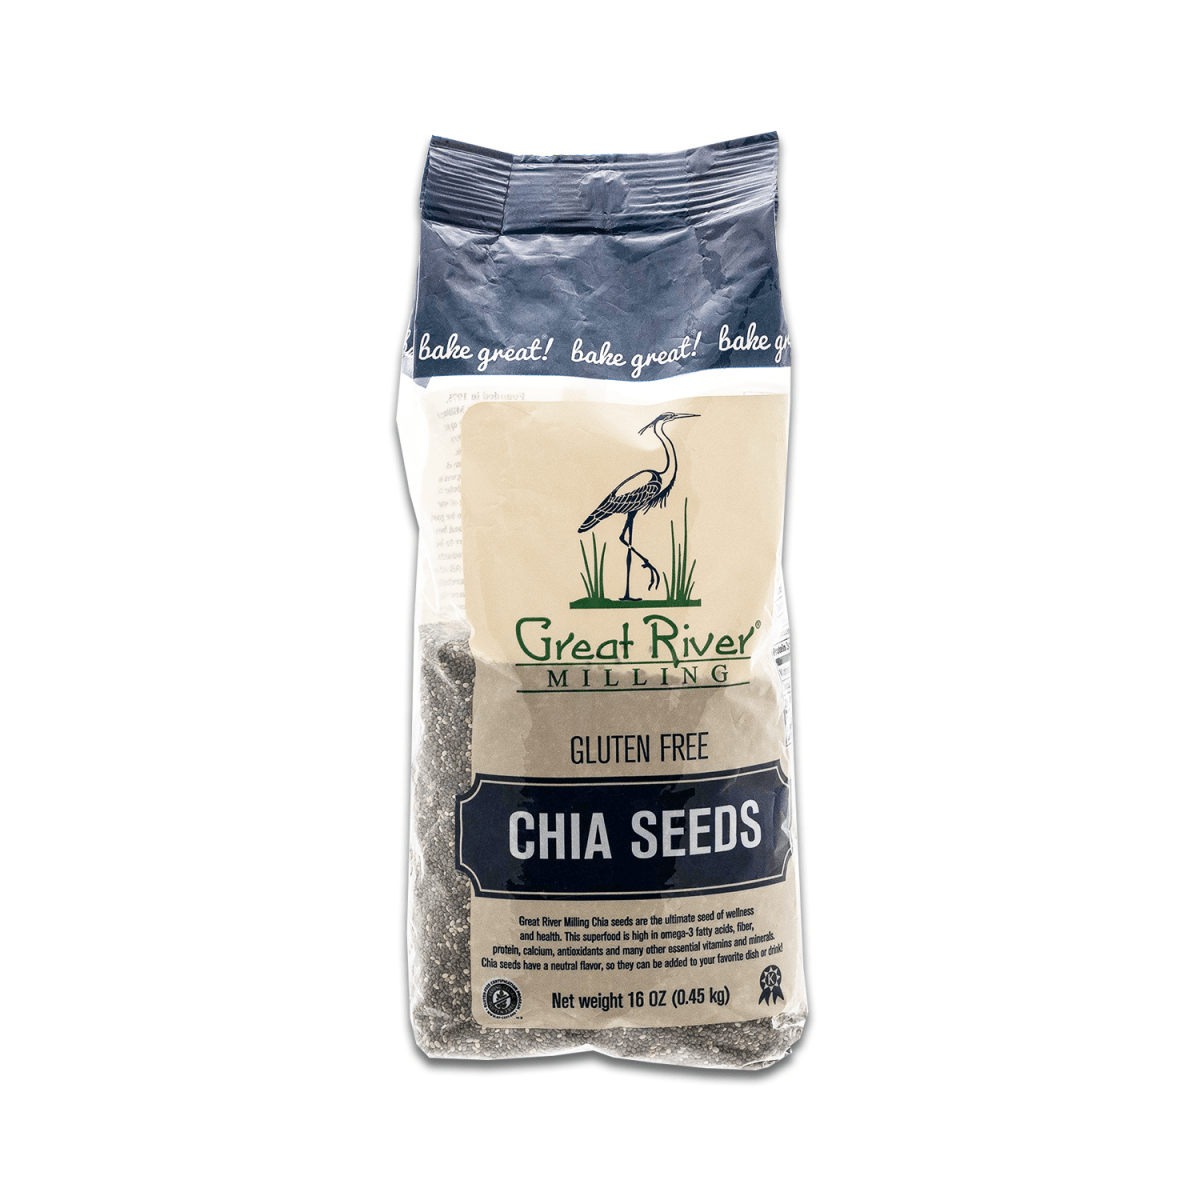 Great River Milling, GF, Chia Seeds